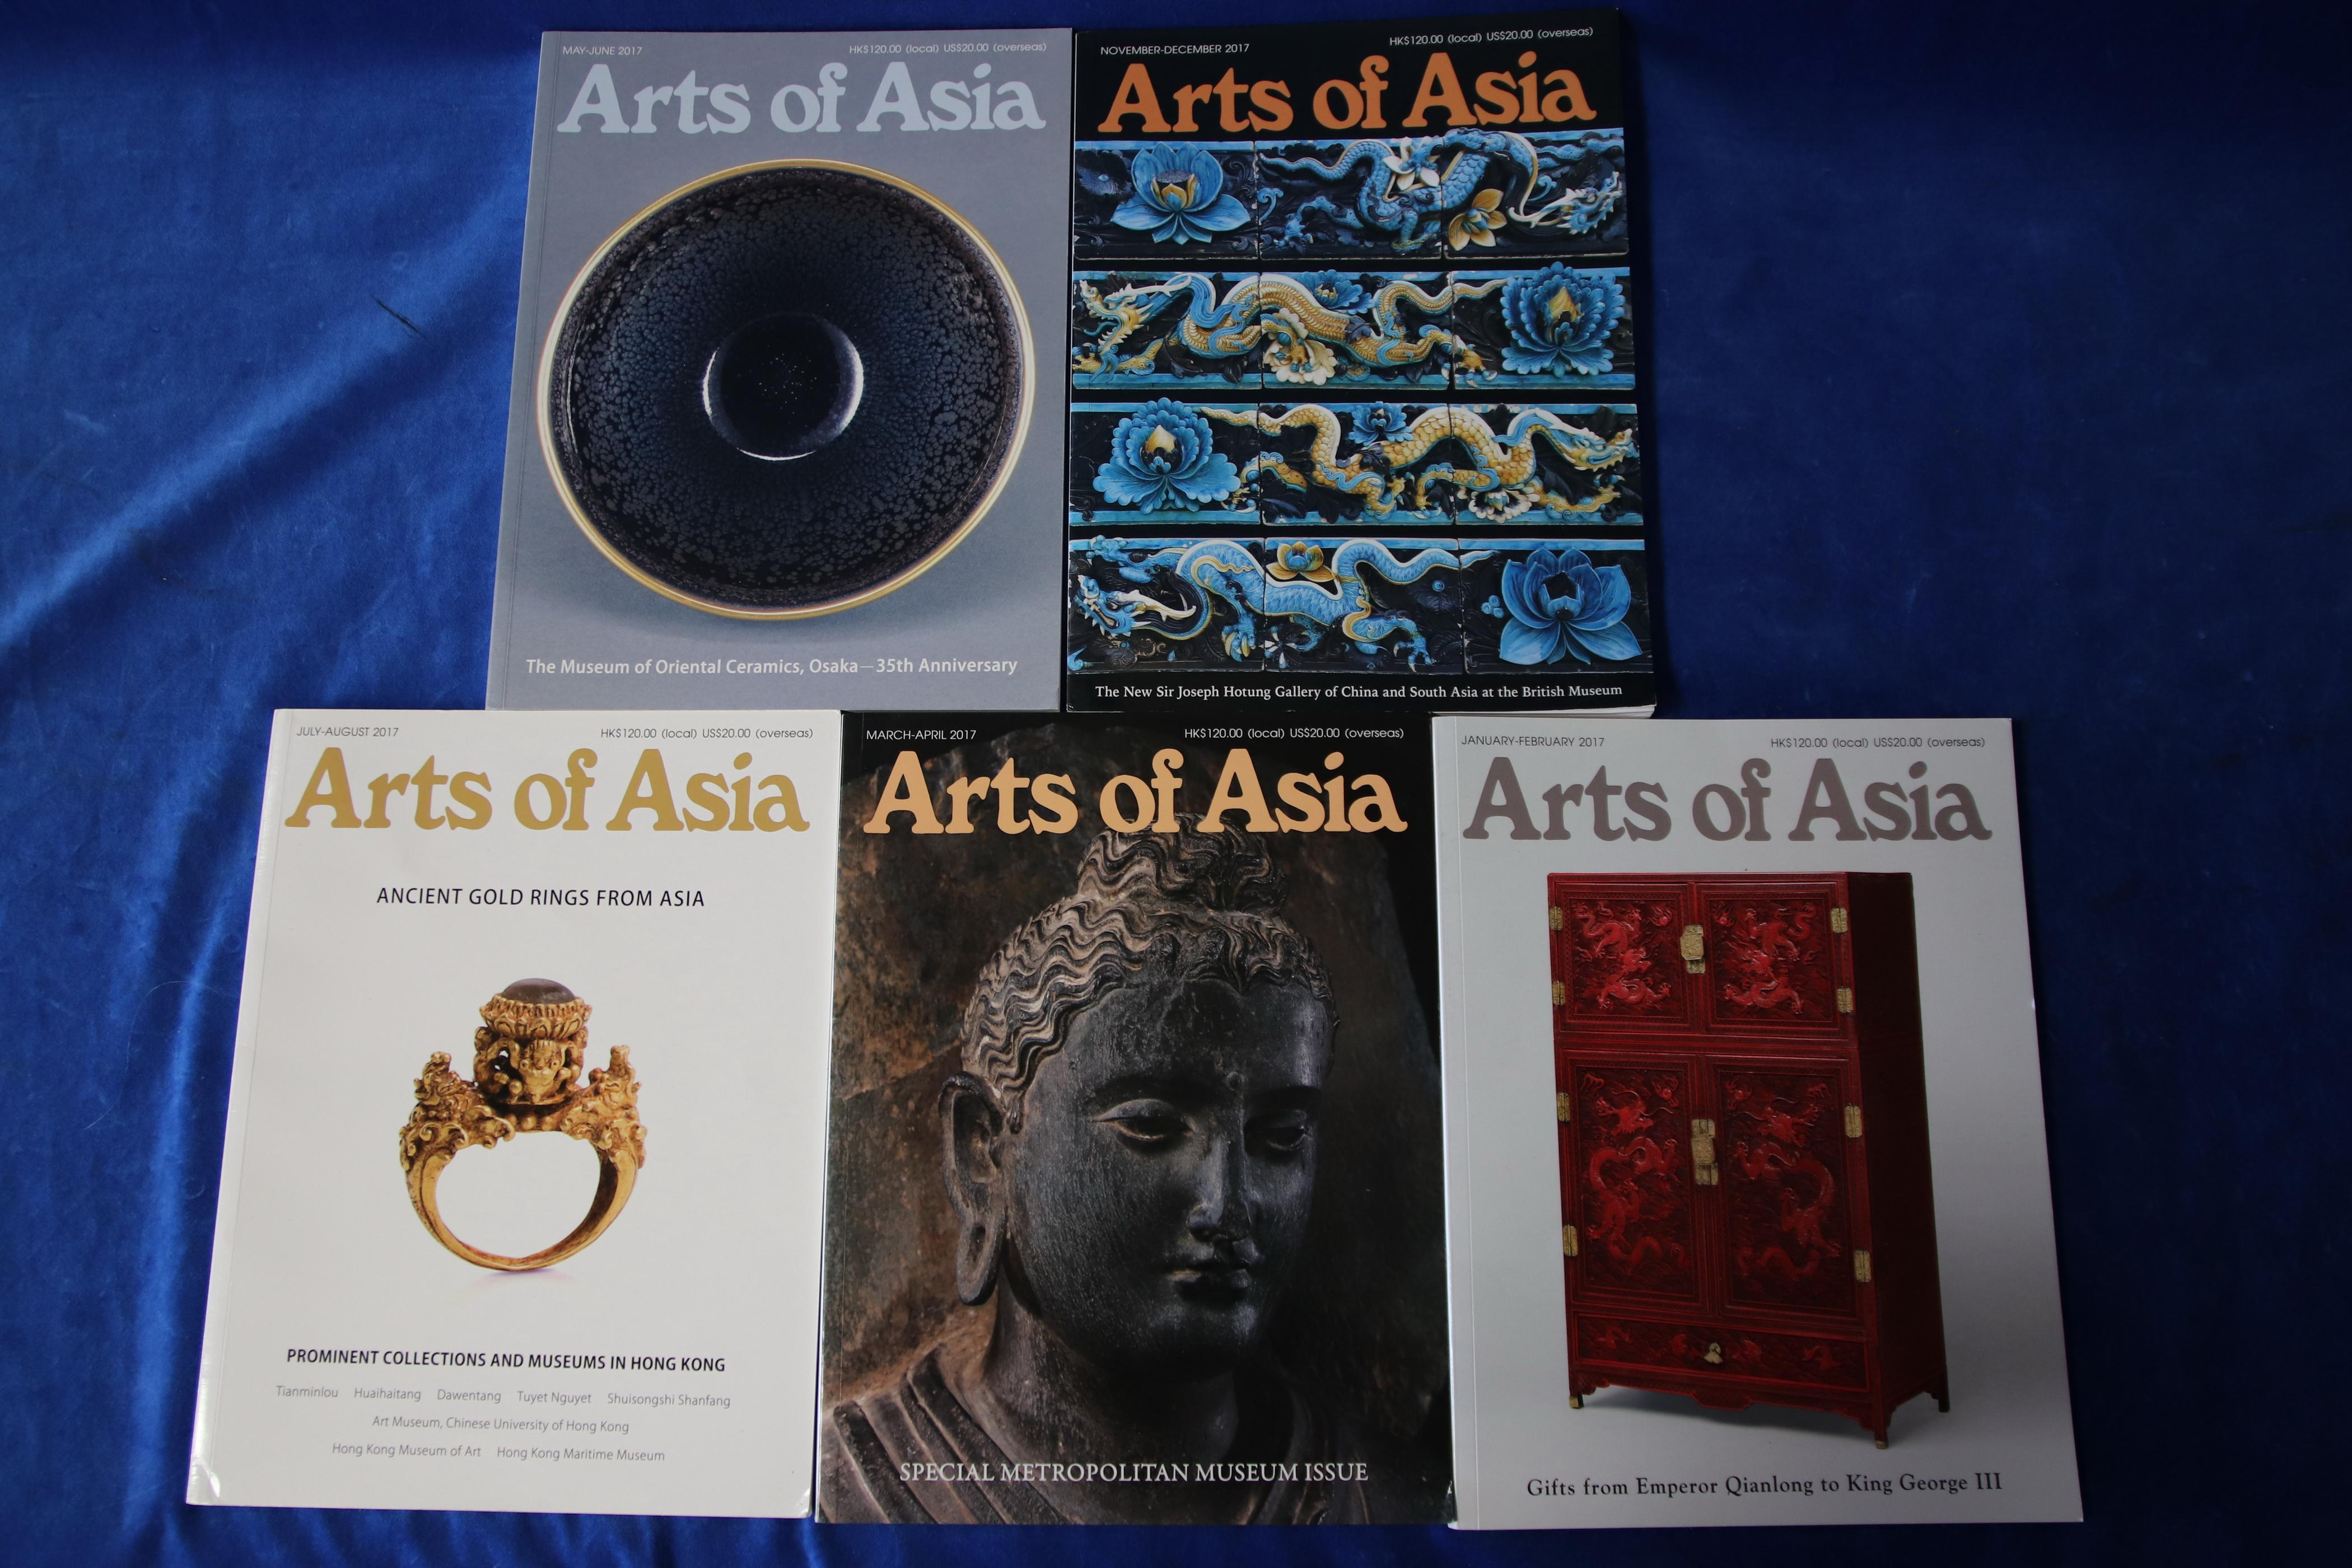 5 ISSUES OF ARTS OF ASIA MAGAZINE, 2017 ISSUES (MISSING SEPT/OCT EDITION)